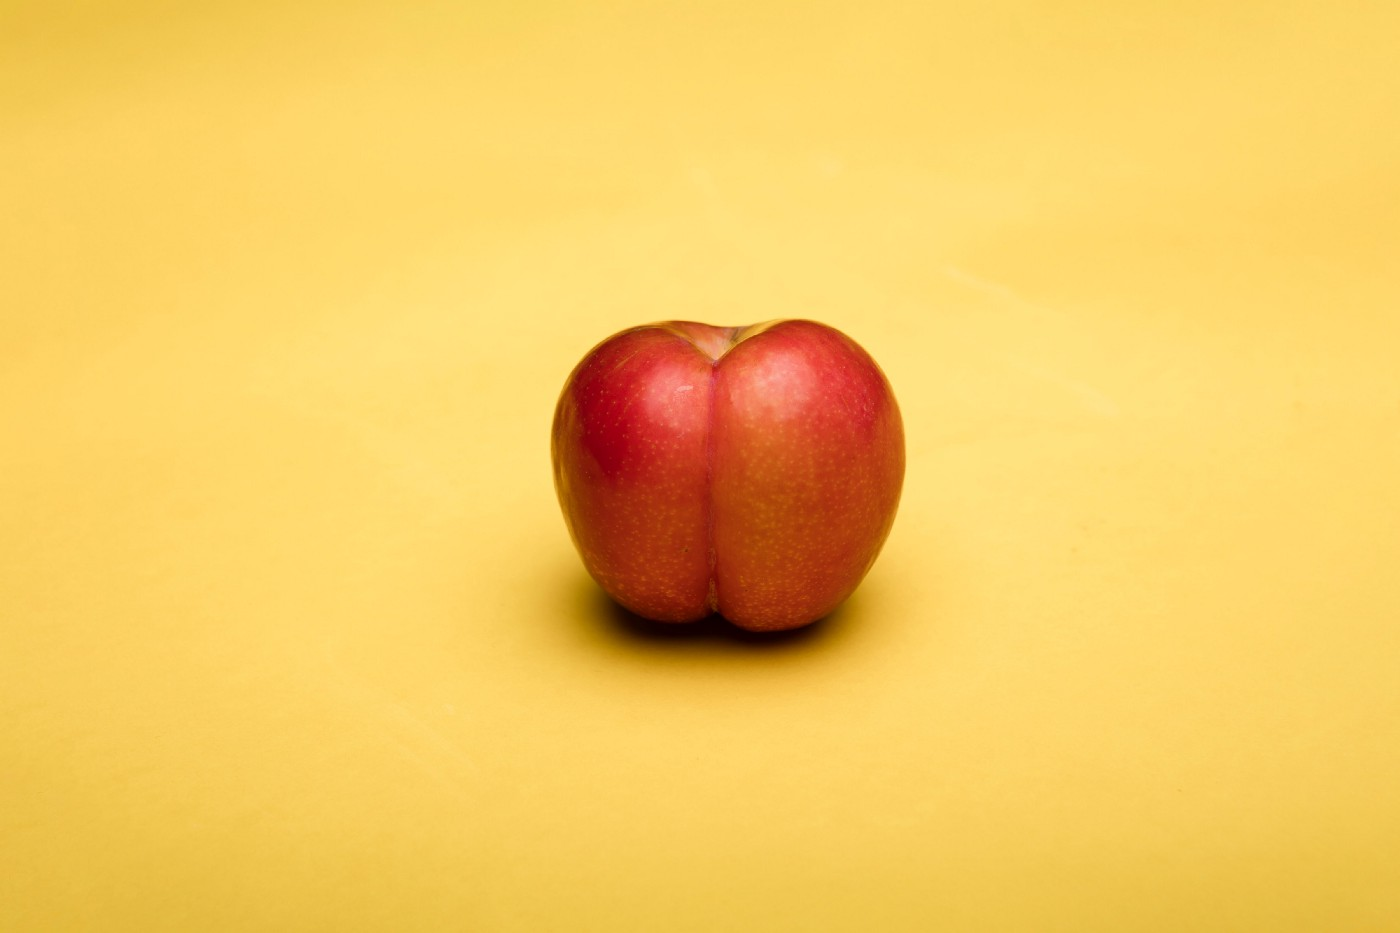 Metaphorically loaded image of a peach that looks like a human butt